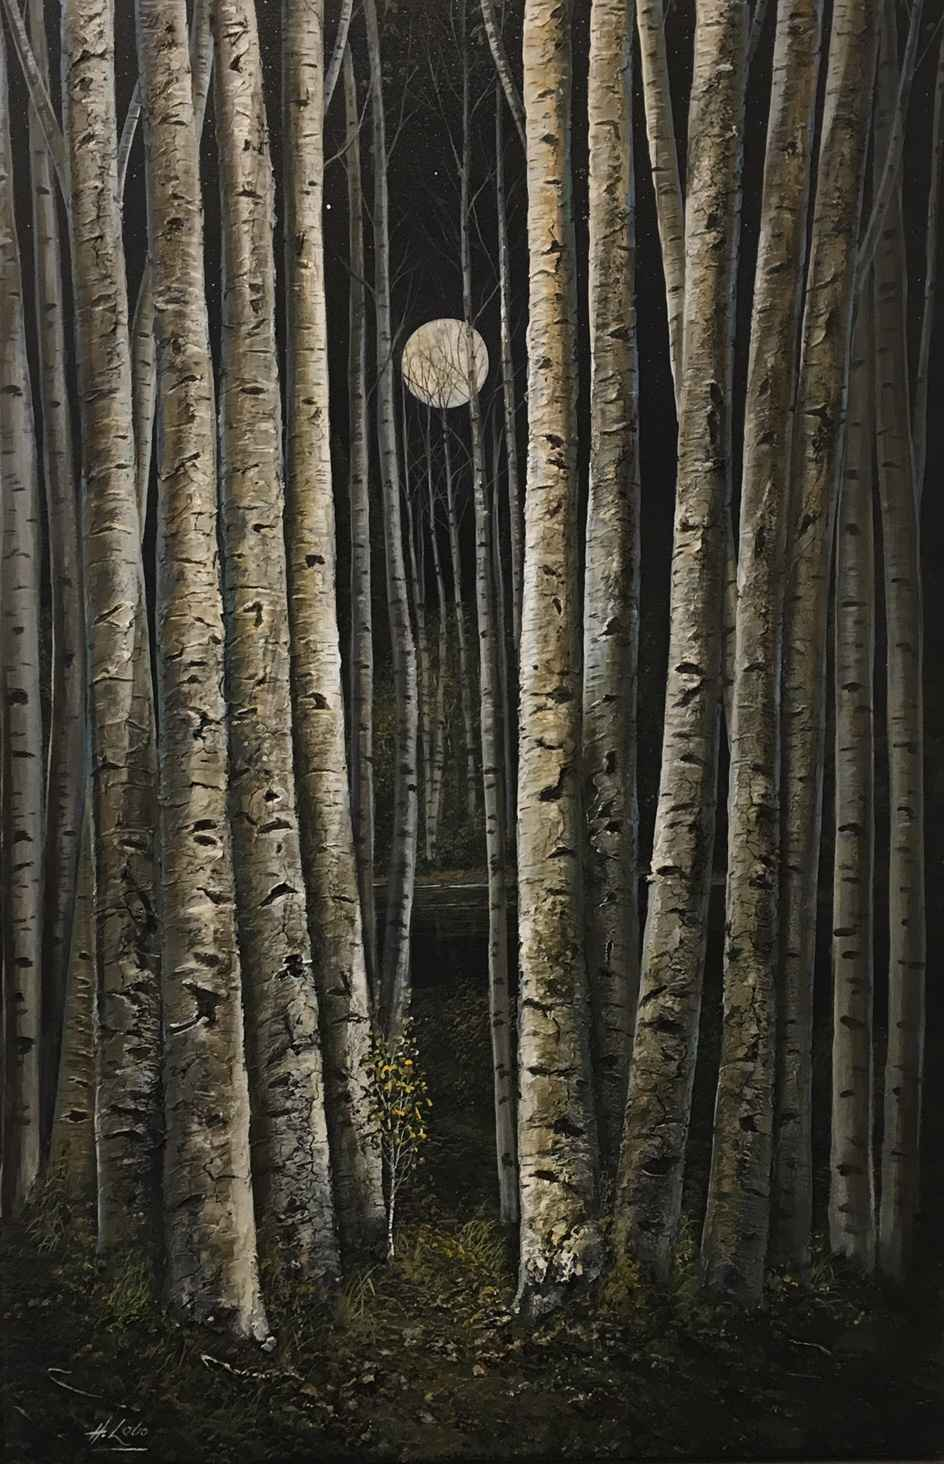 Moonlit Birches by  Henry Lobo - Masterpiece Online